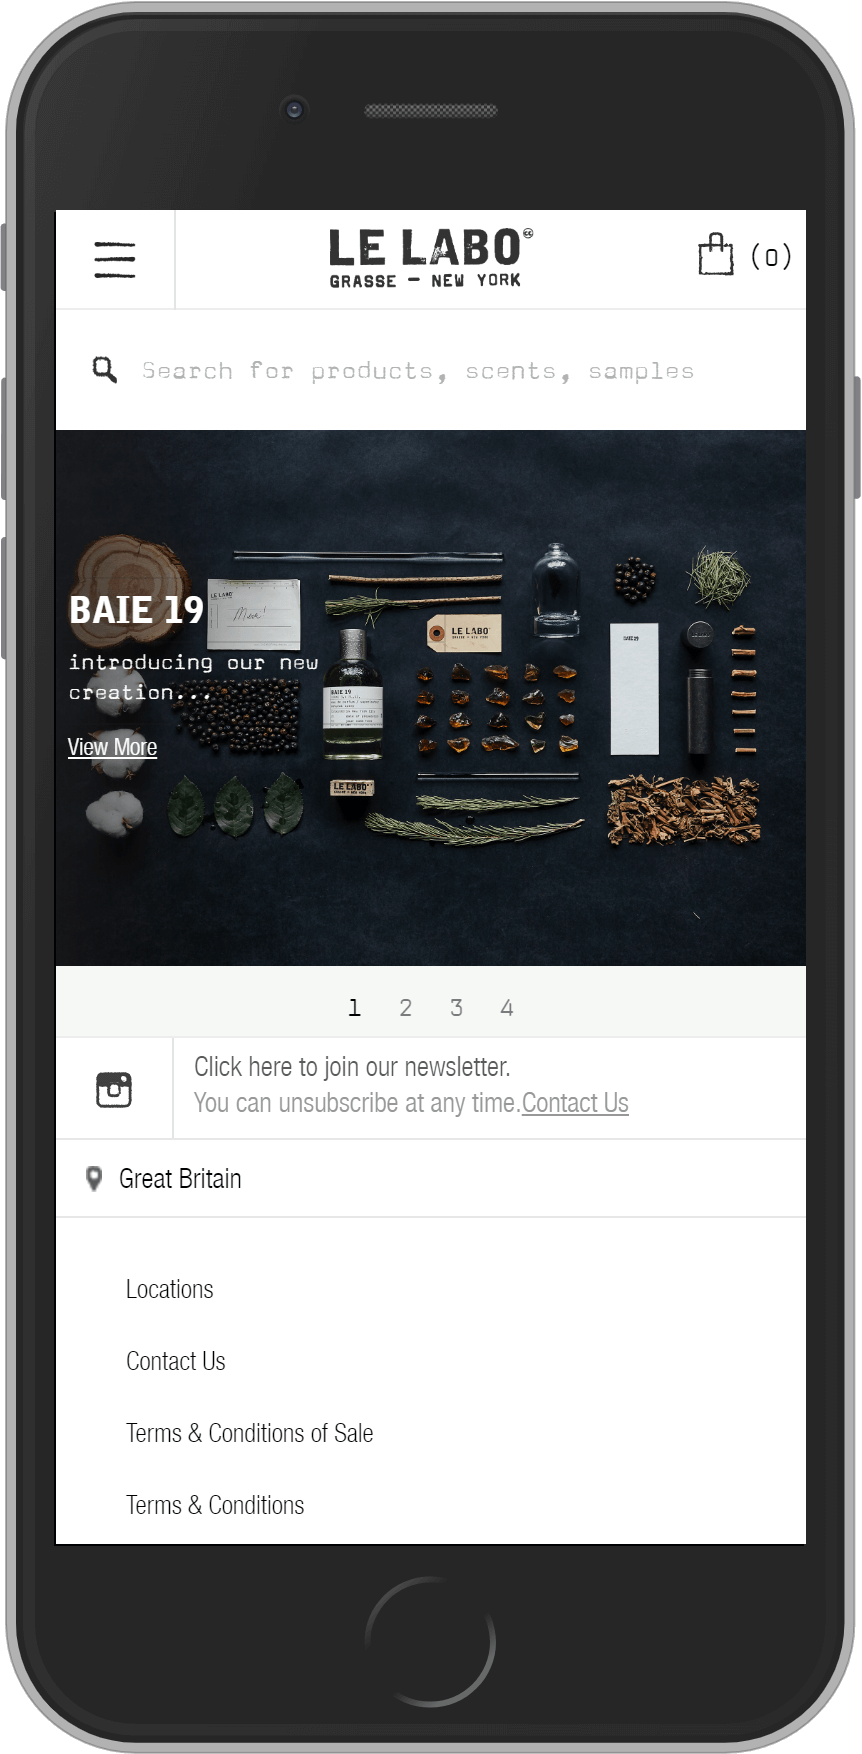 Le Labo on mobile